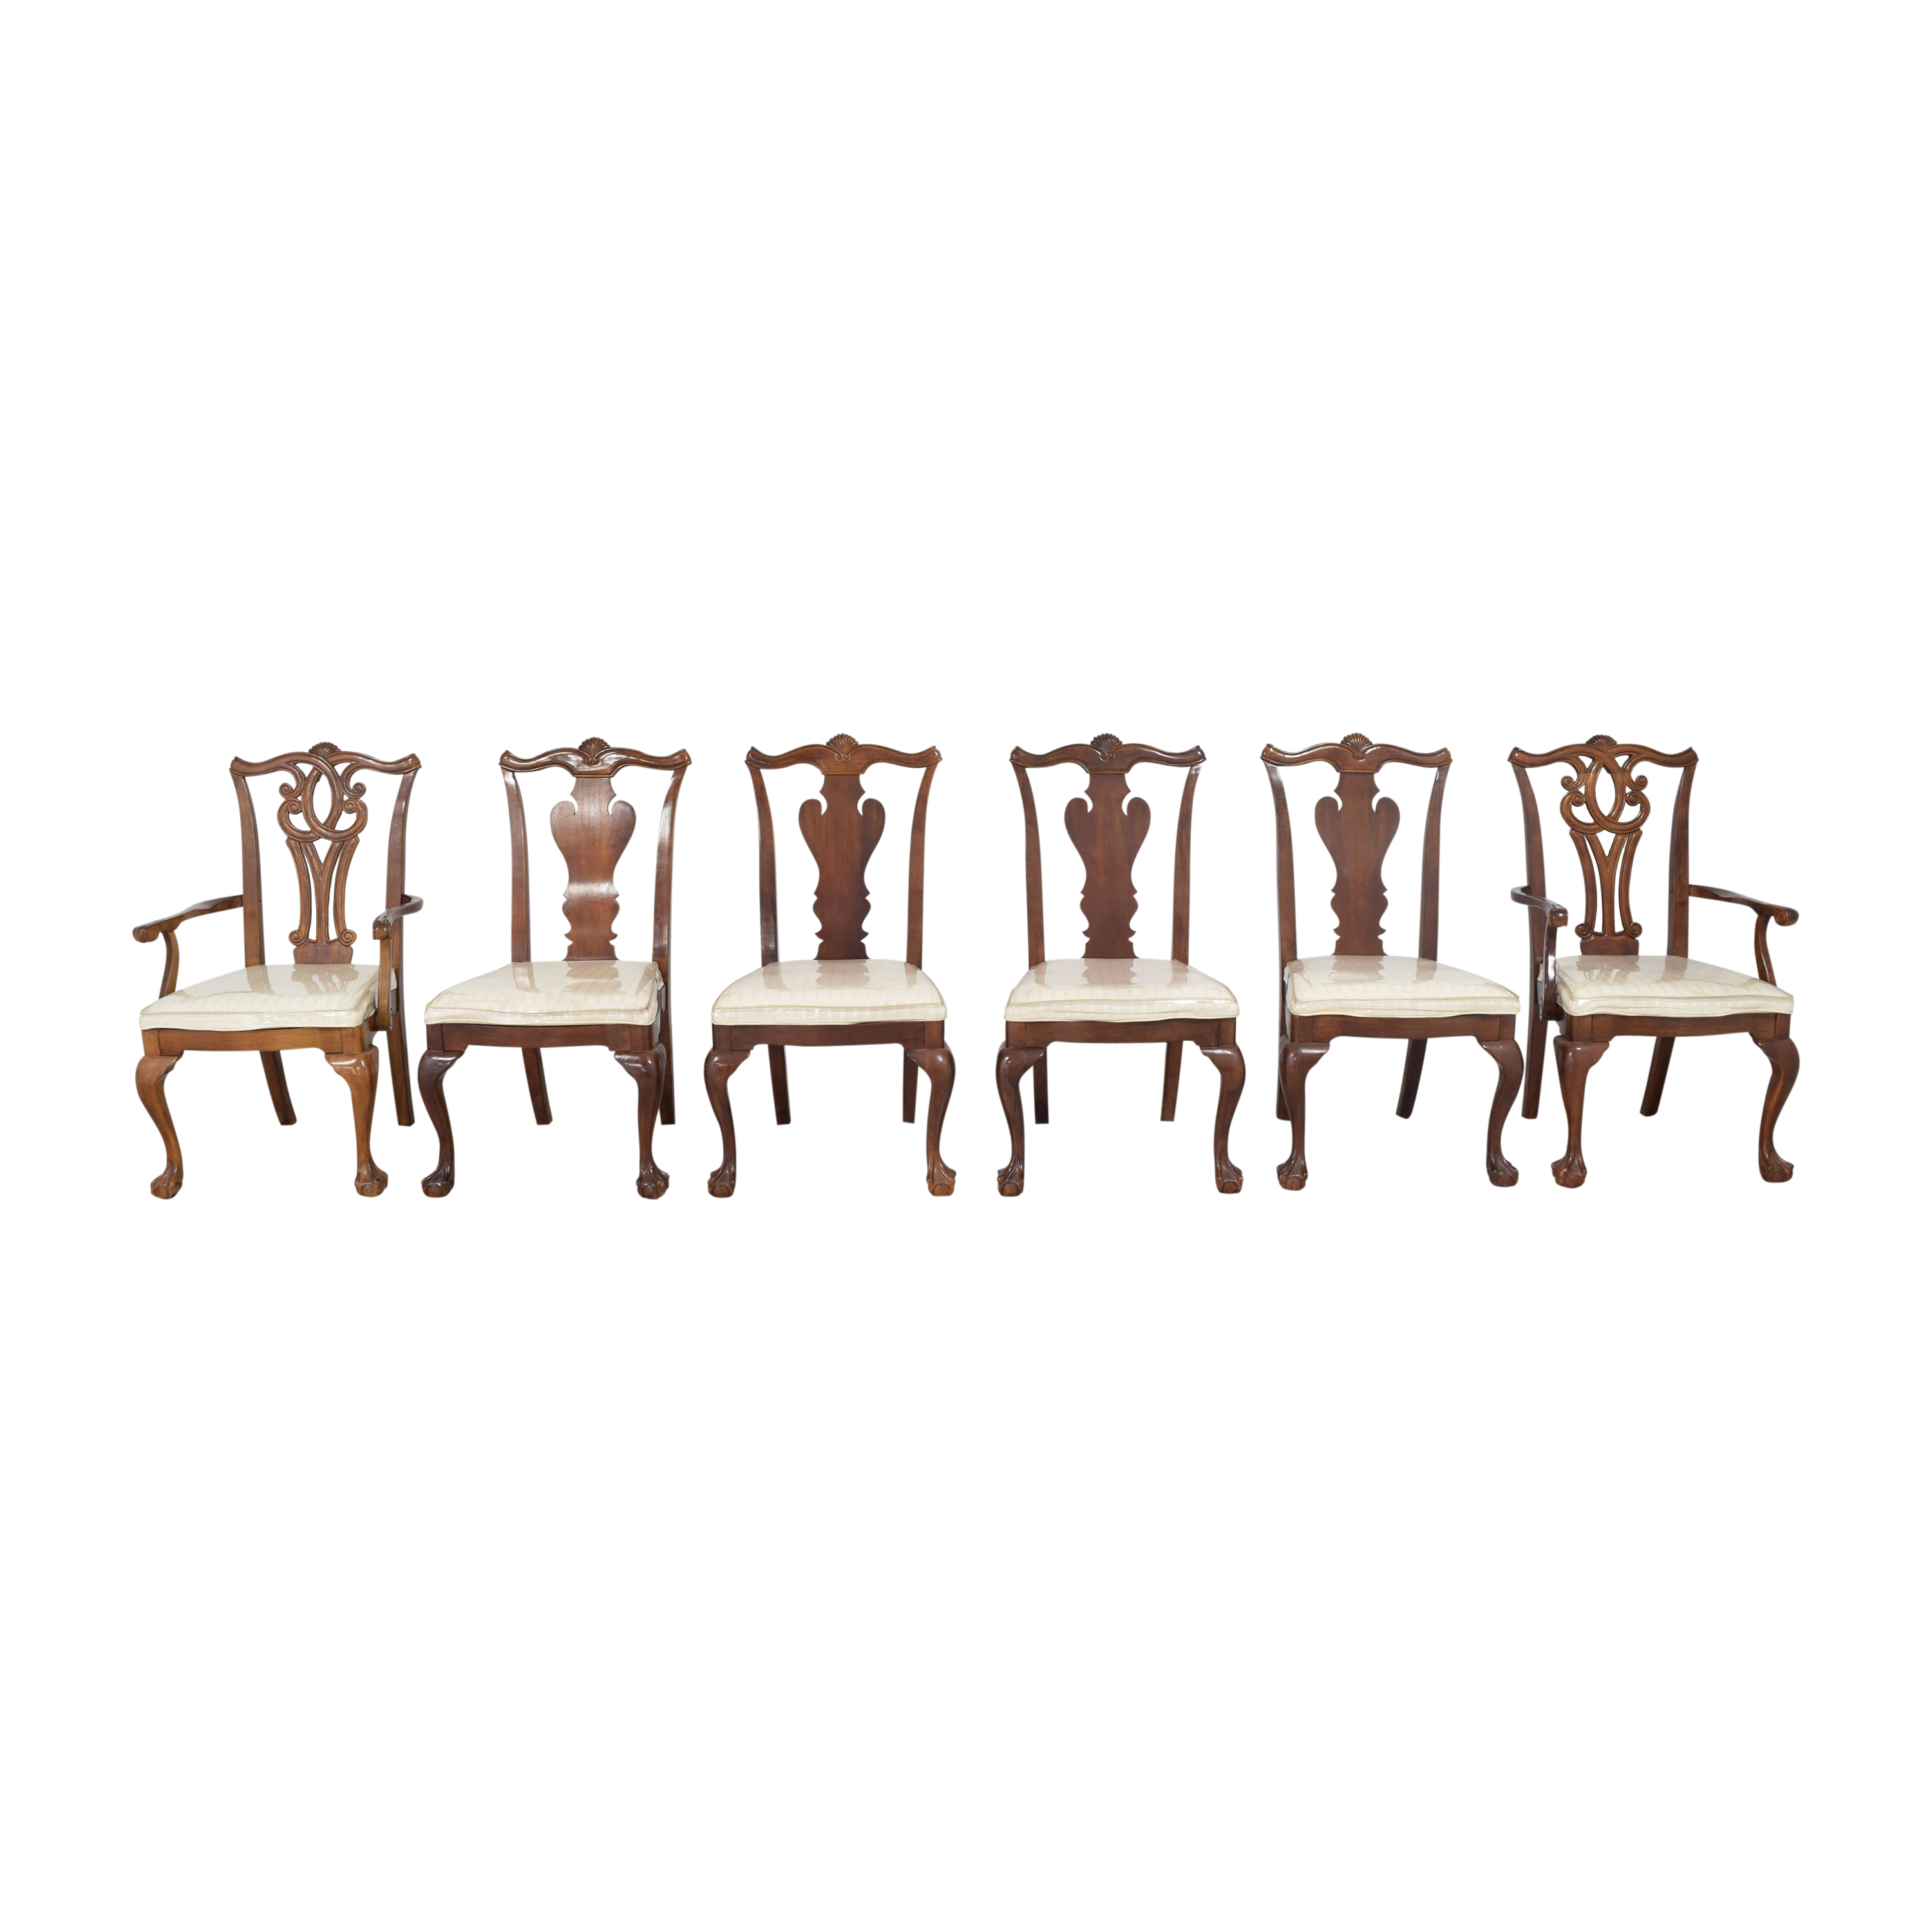 Universal Furniture Universal Furniture Queen Anne-Style Dining Chairs used